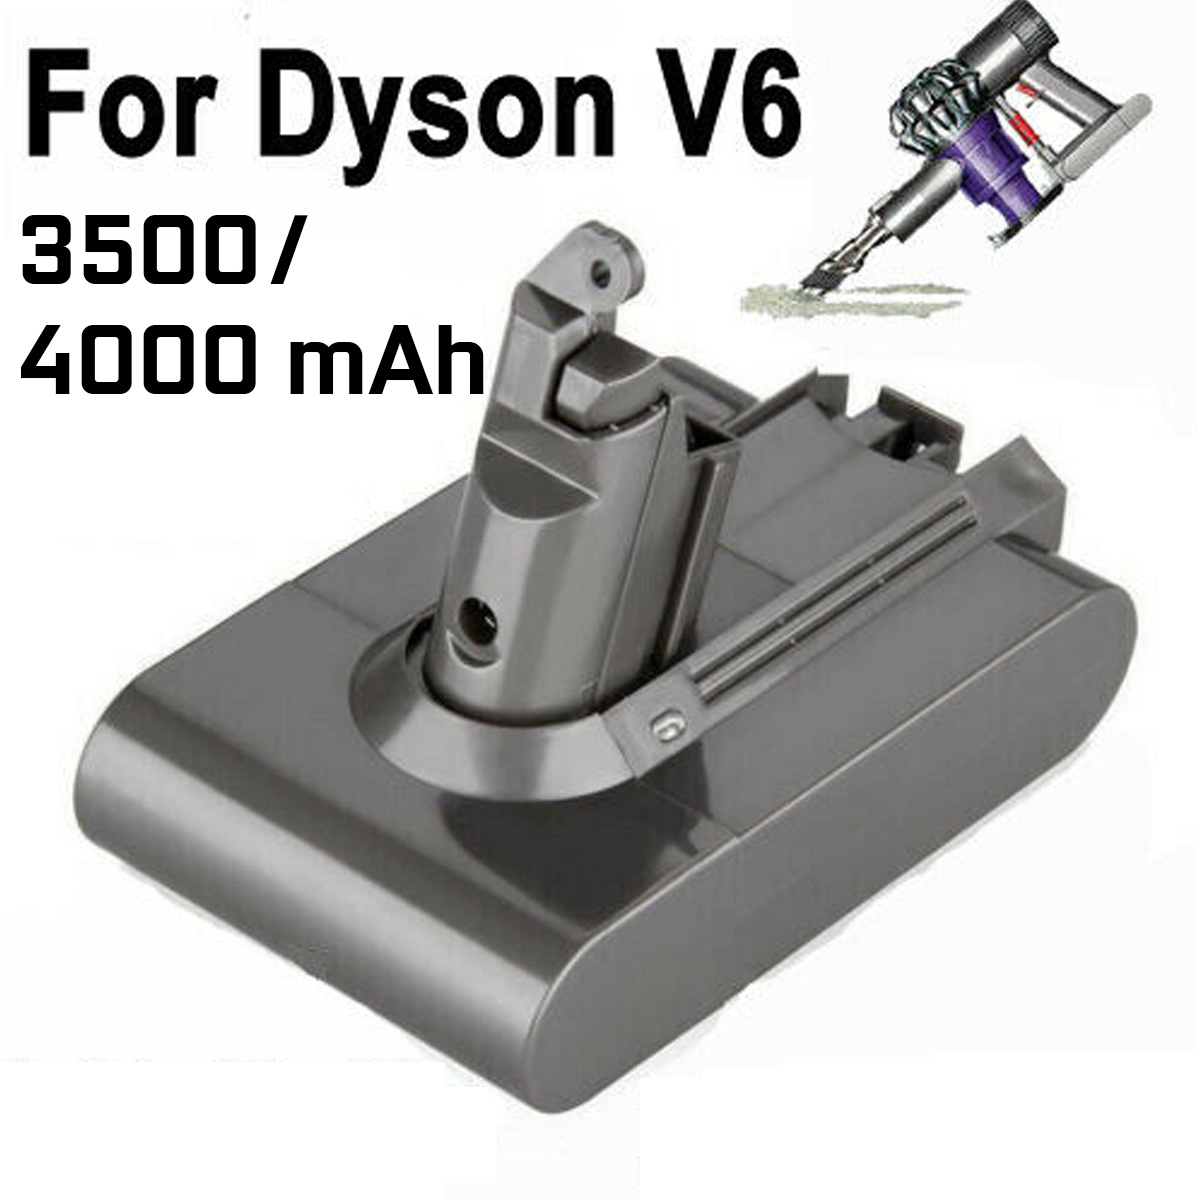 4000mAh 3500mAh Li-ion Vacuum Cleaner Battery For Dyson Battery V6 DC58 59 61 62 72 74 Vacuum Cleaner Replacement Battery